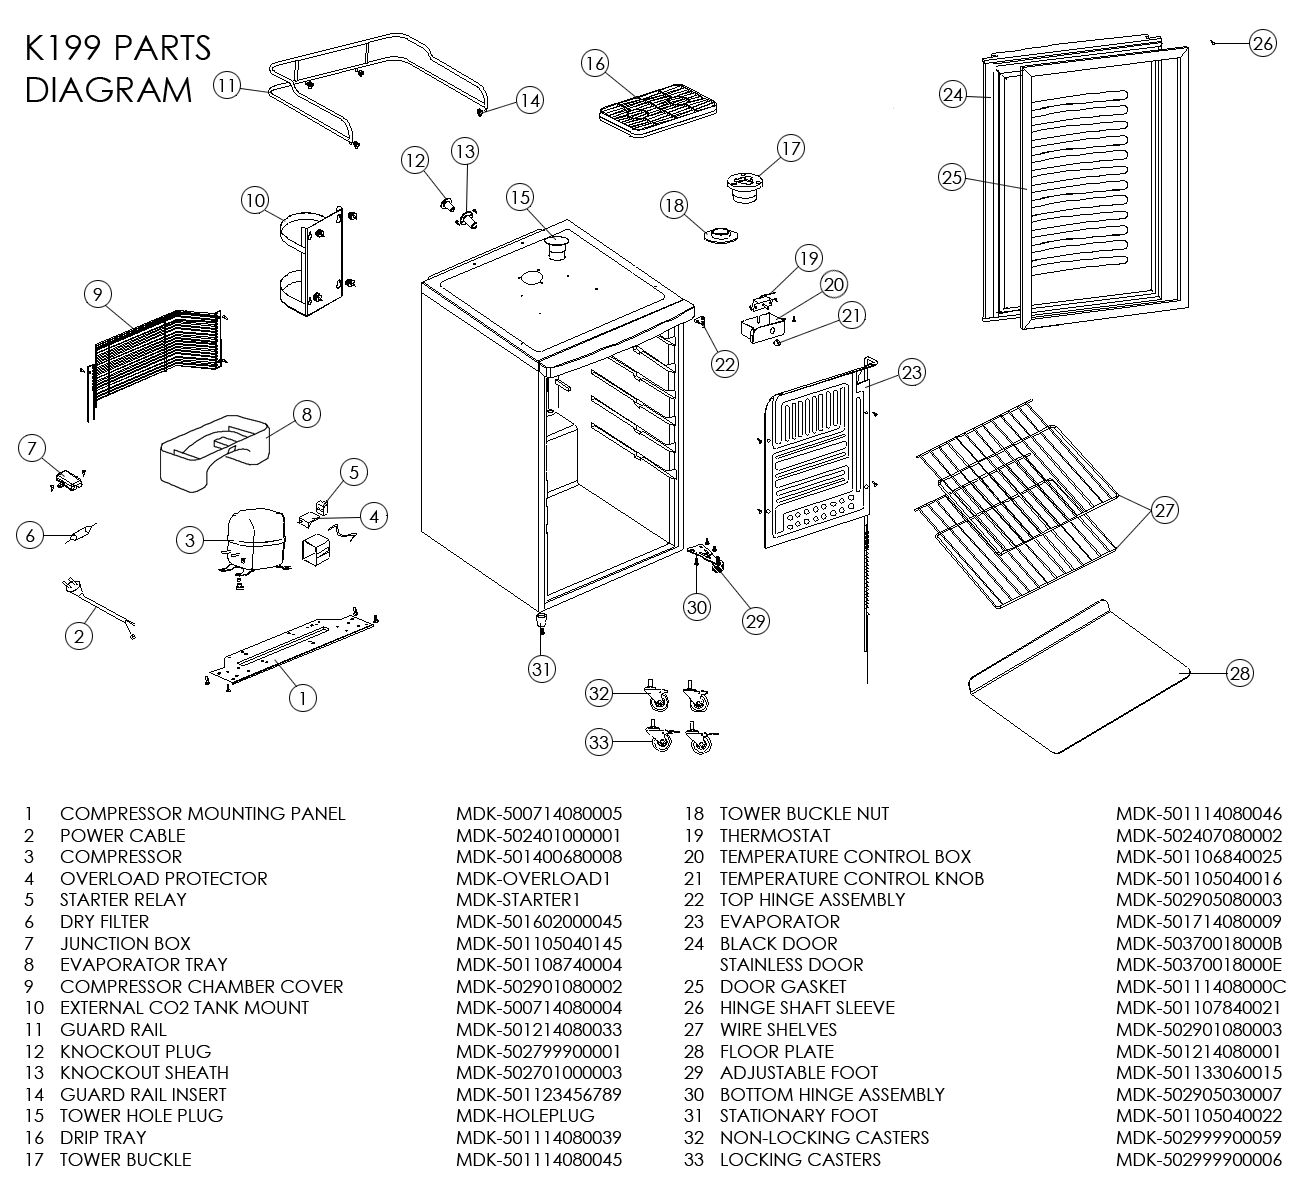 Edenpure Heater Wiring Diagram